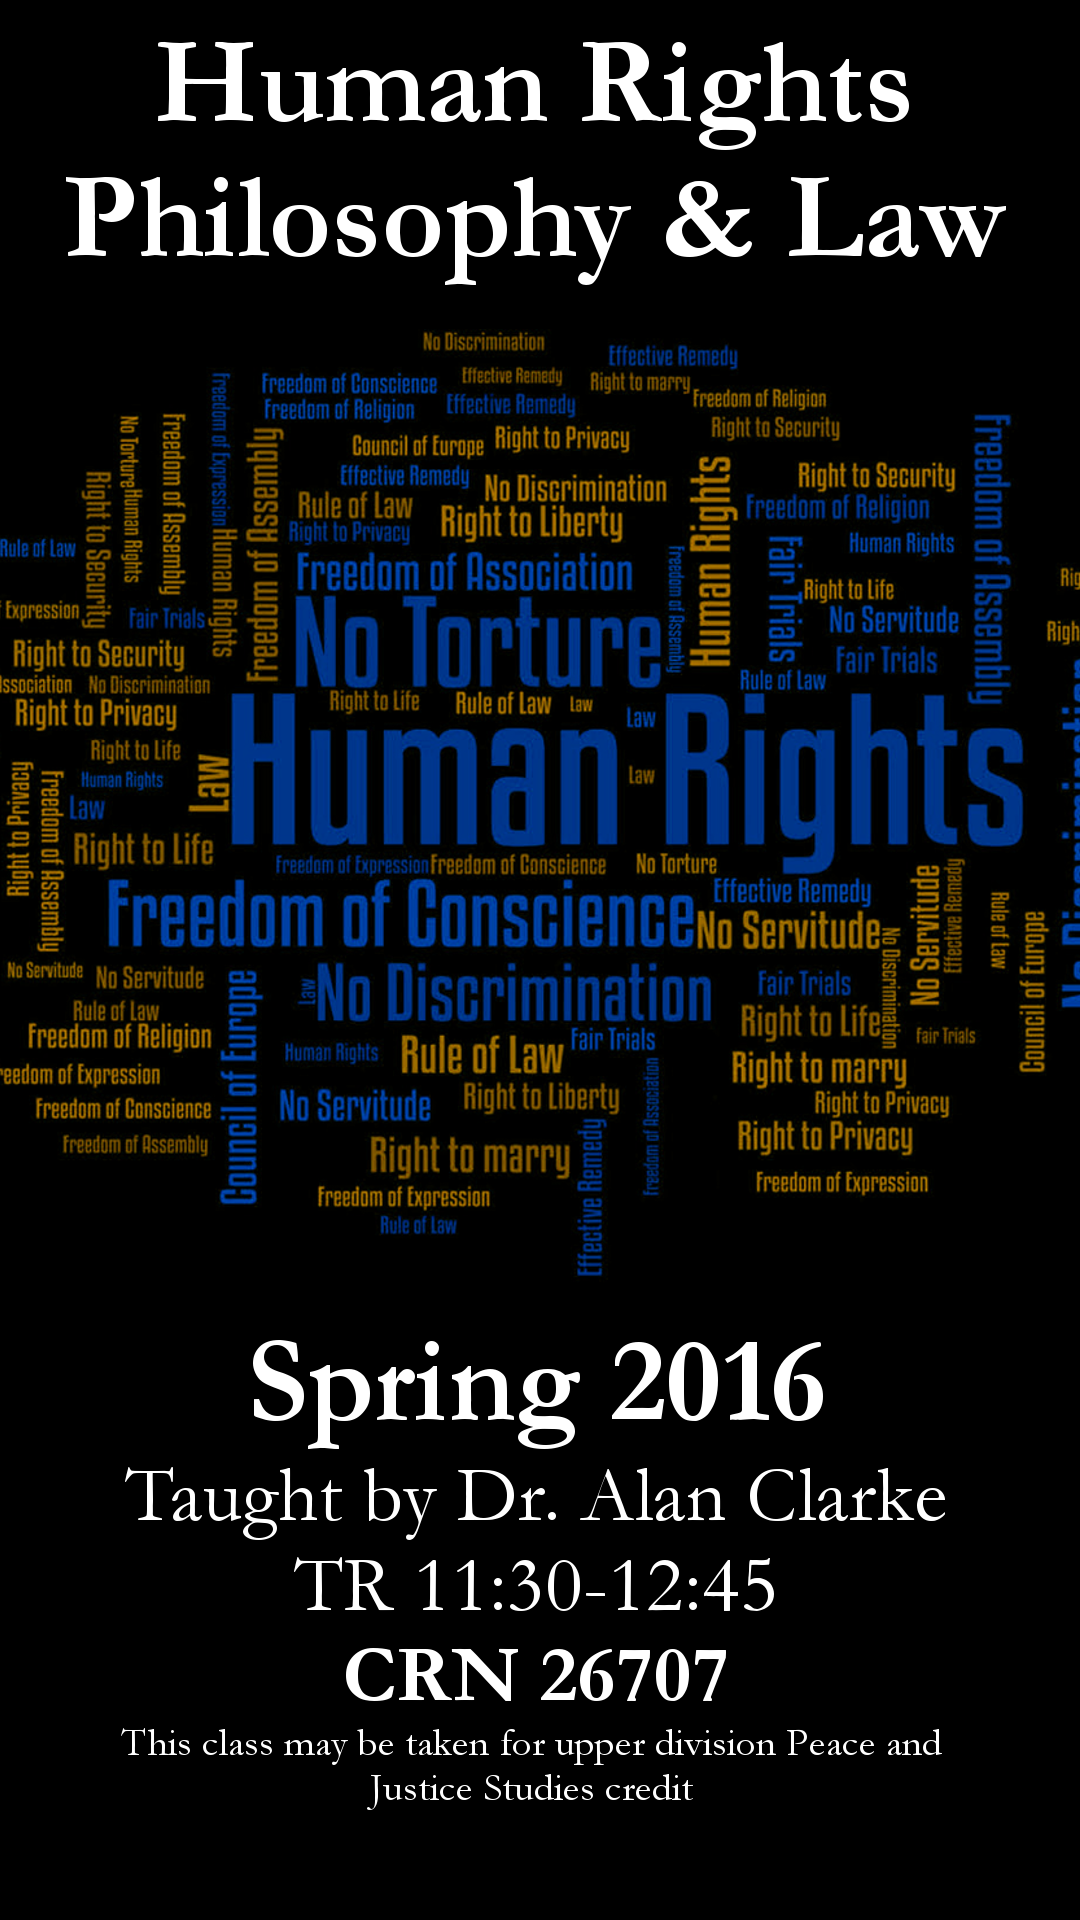 Human Rights Philosophy and Law